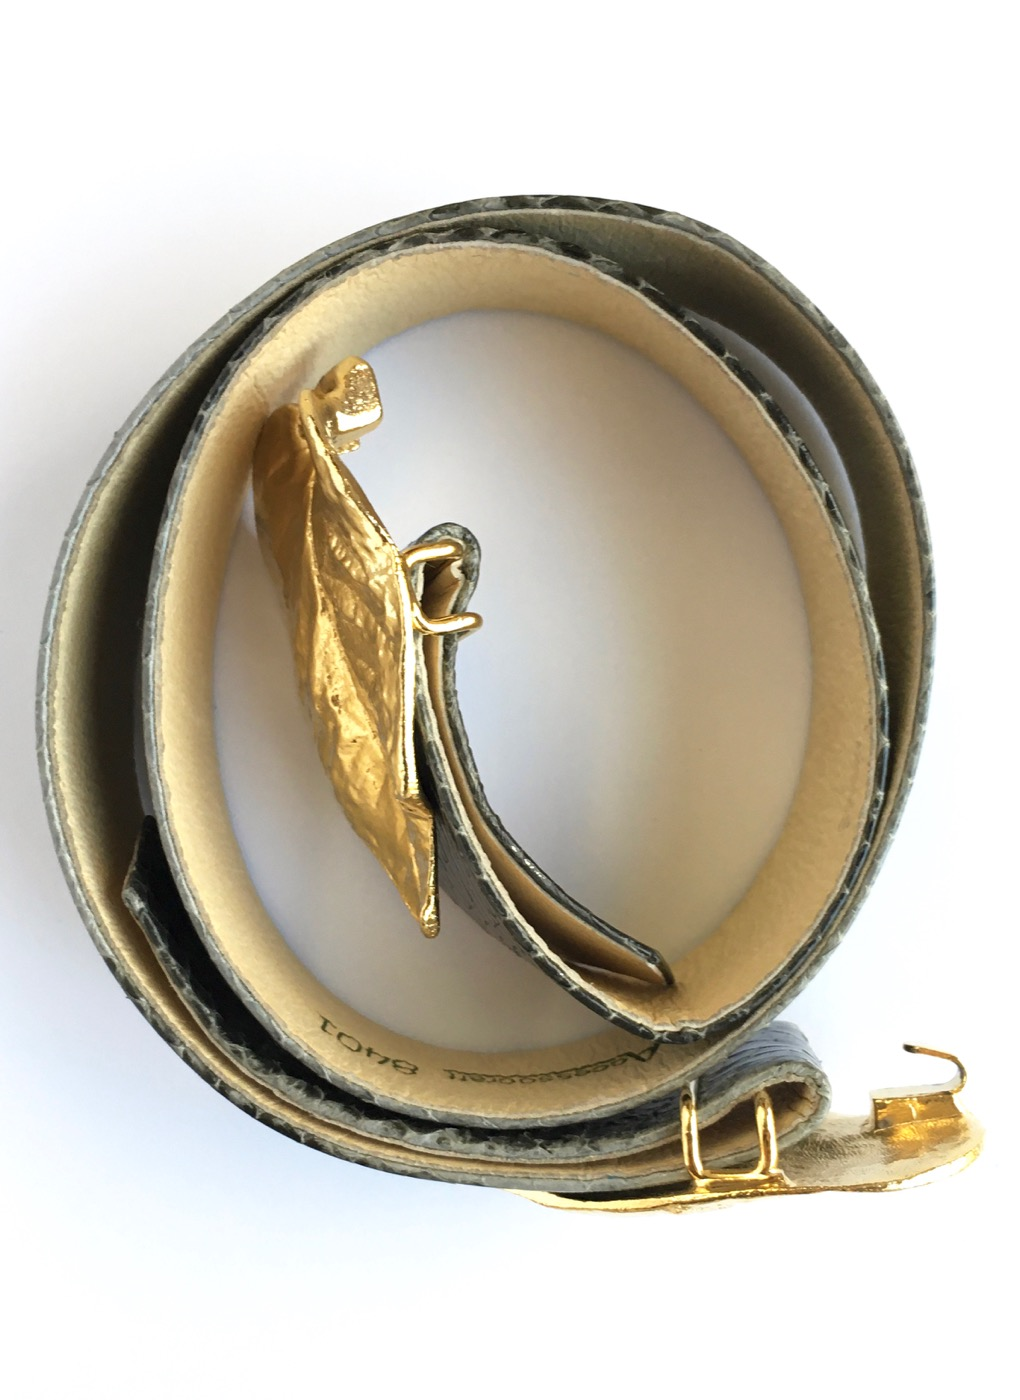 1980s Mimi di N gold leaf buckle belt